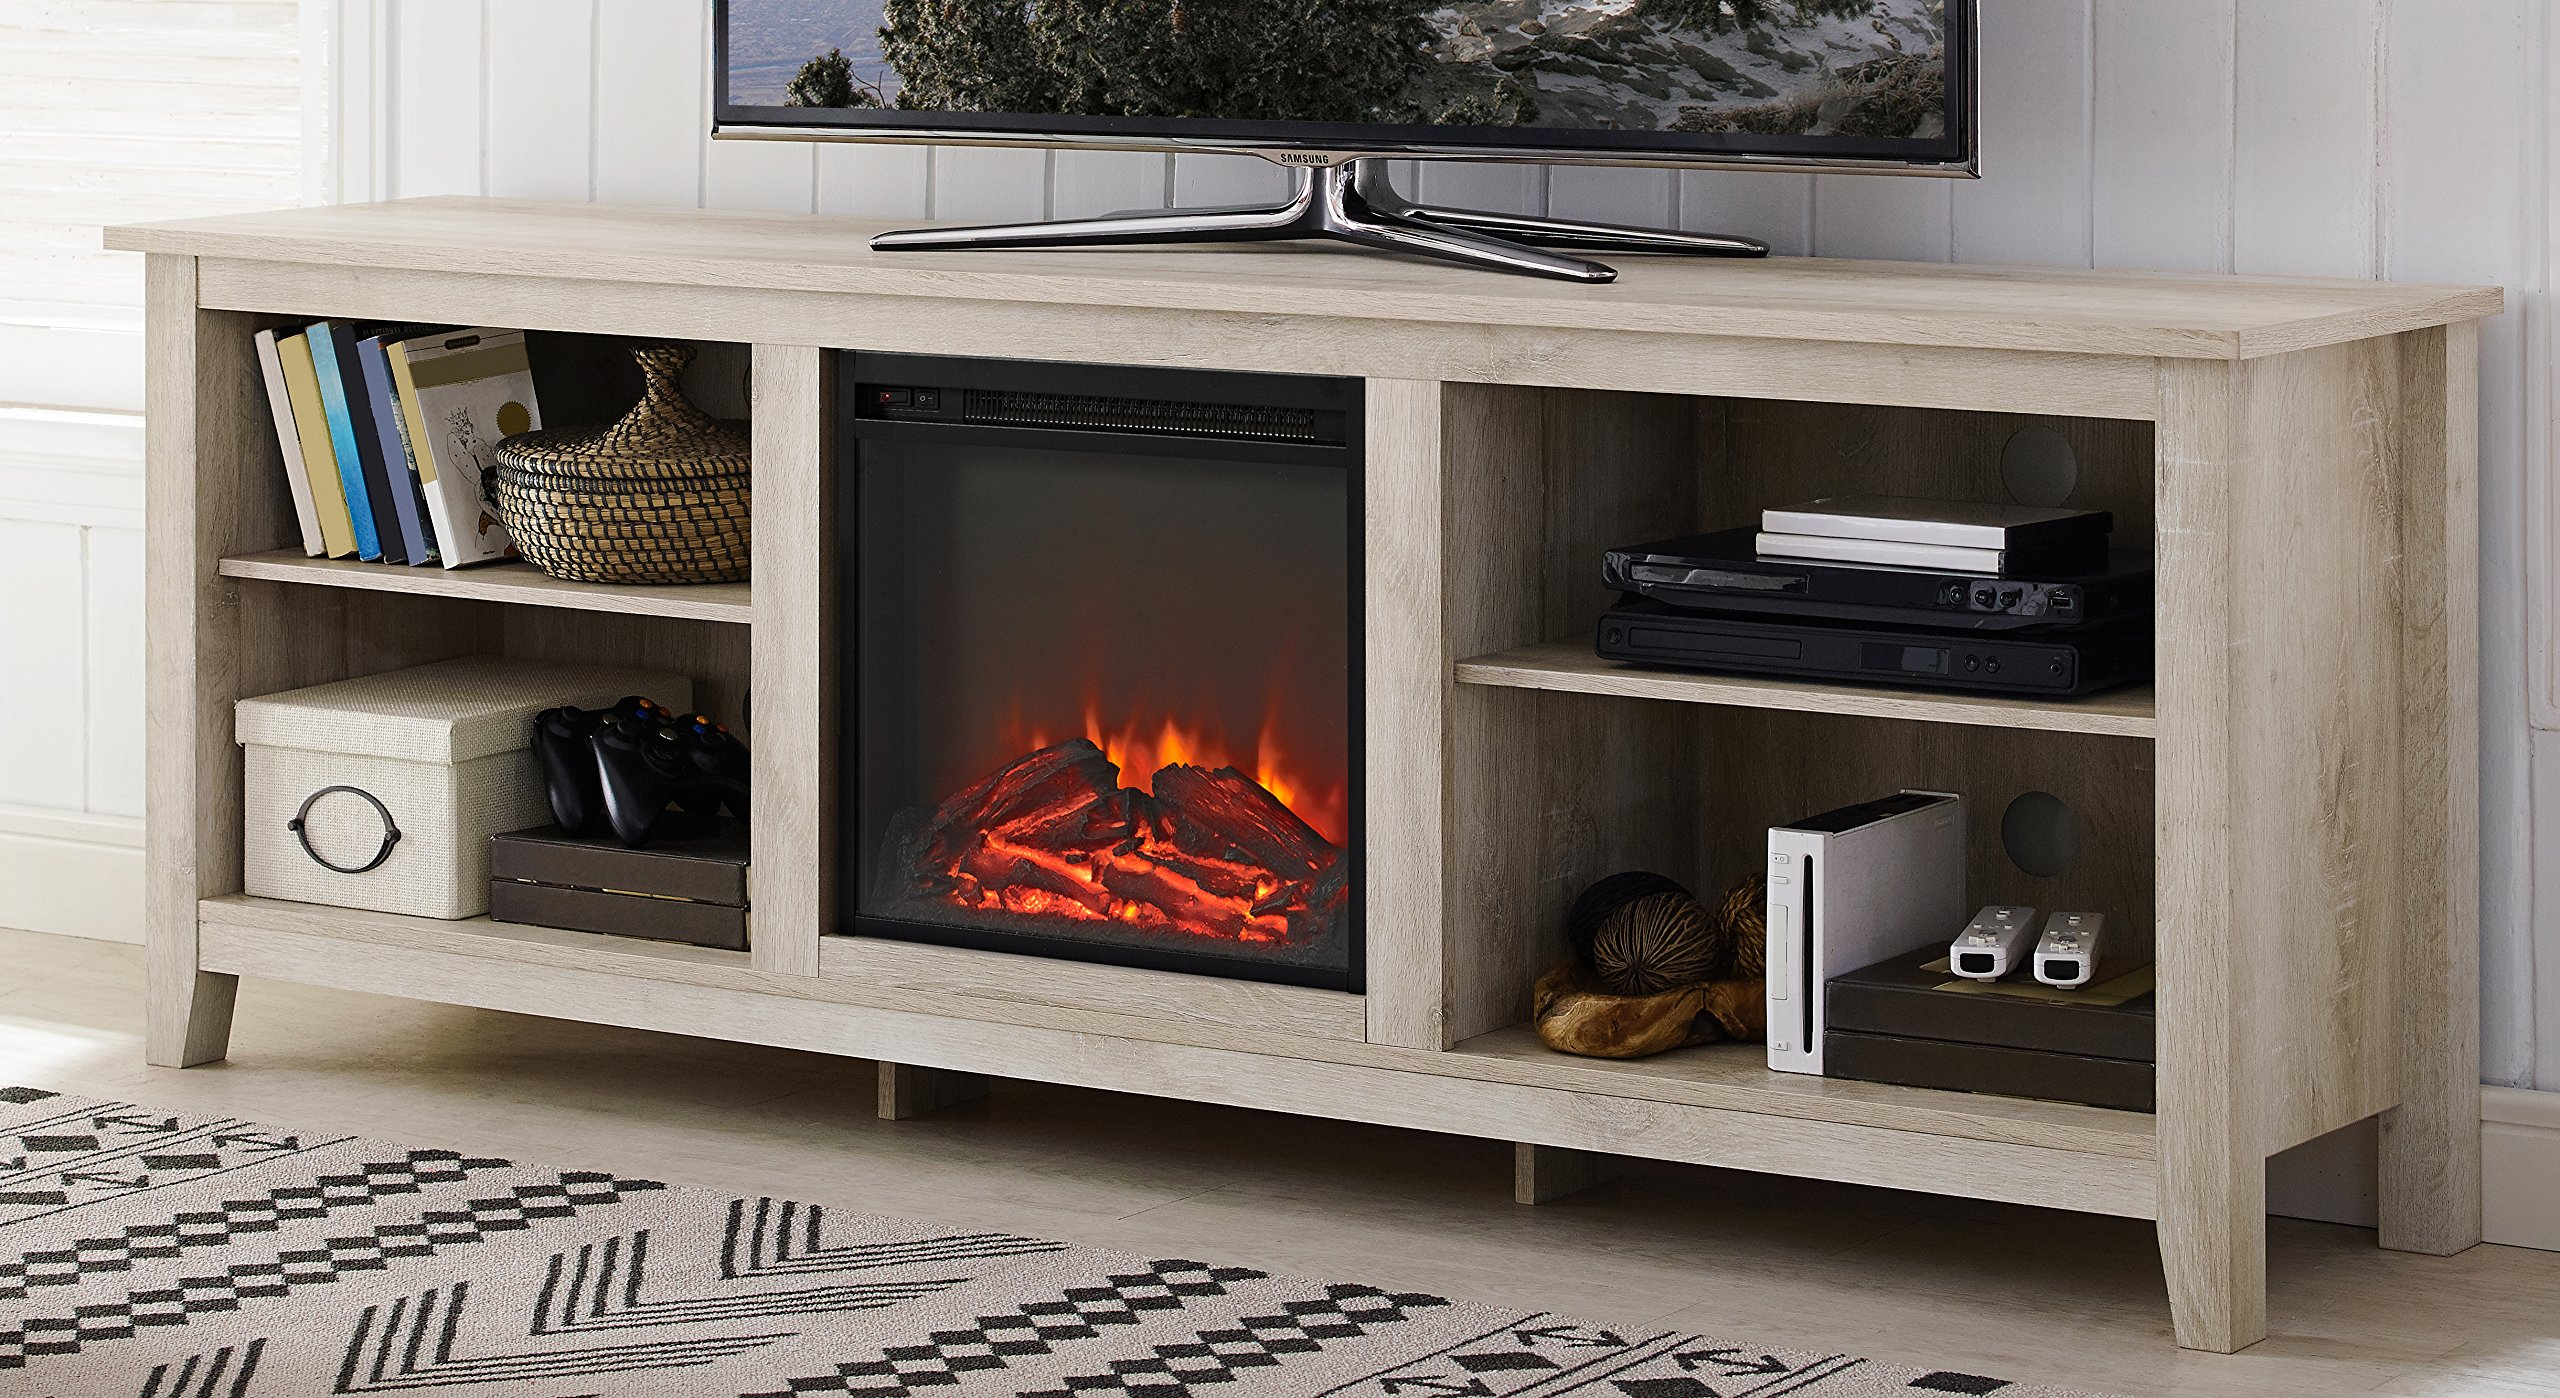 WE Furniture 70'' Wood Media TV Stand Console with Fireplace - White Oak